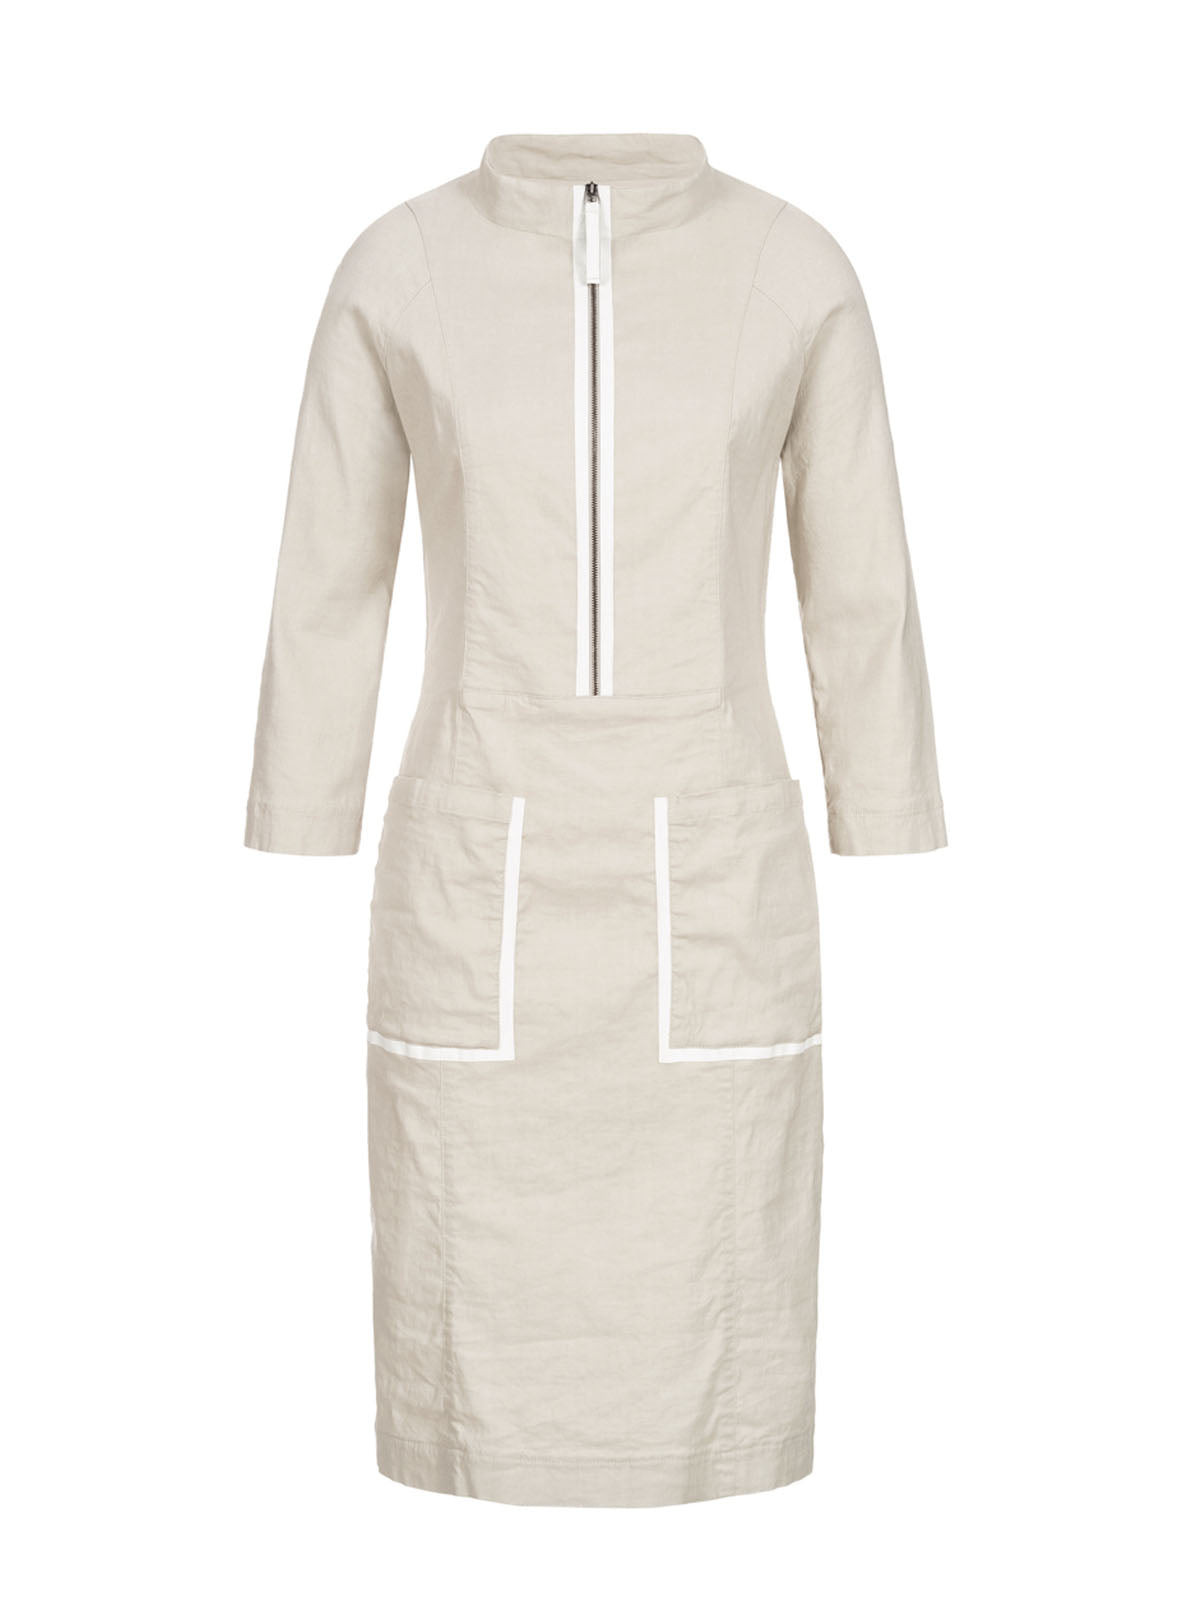 Annette Gortz Linen Blend Dress